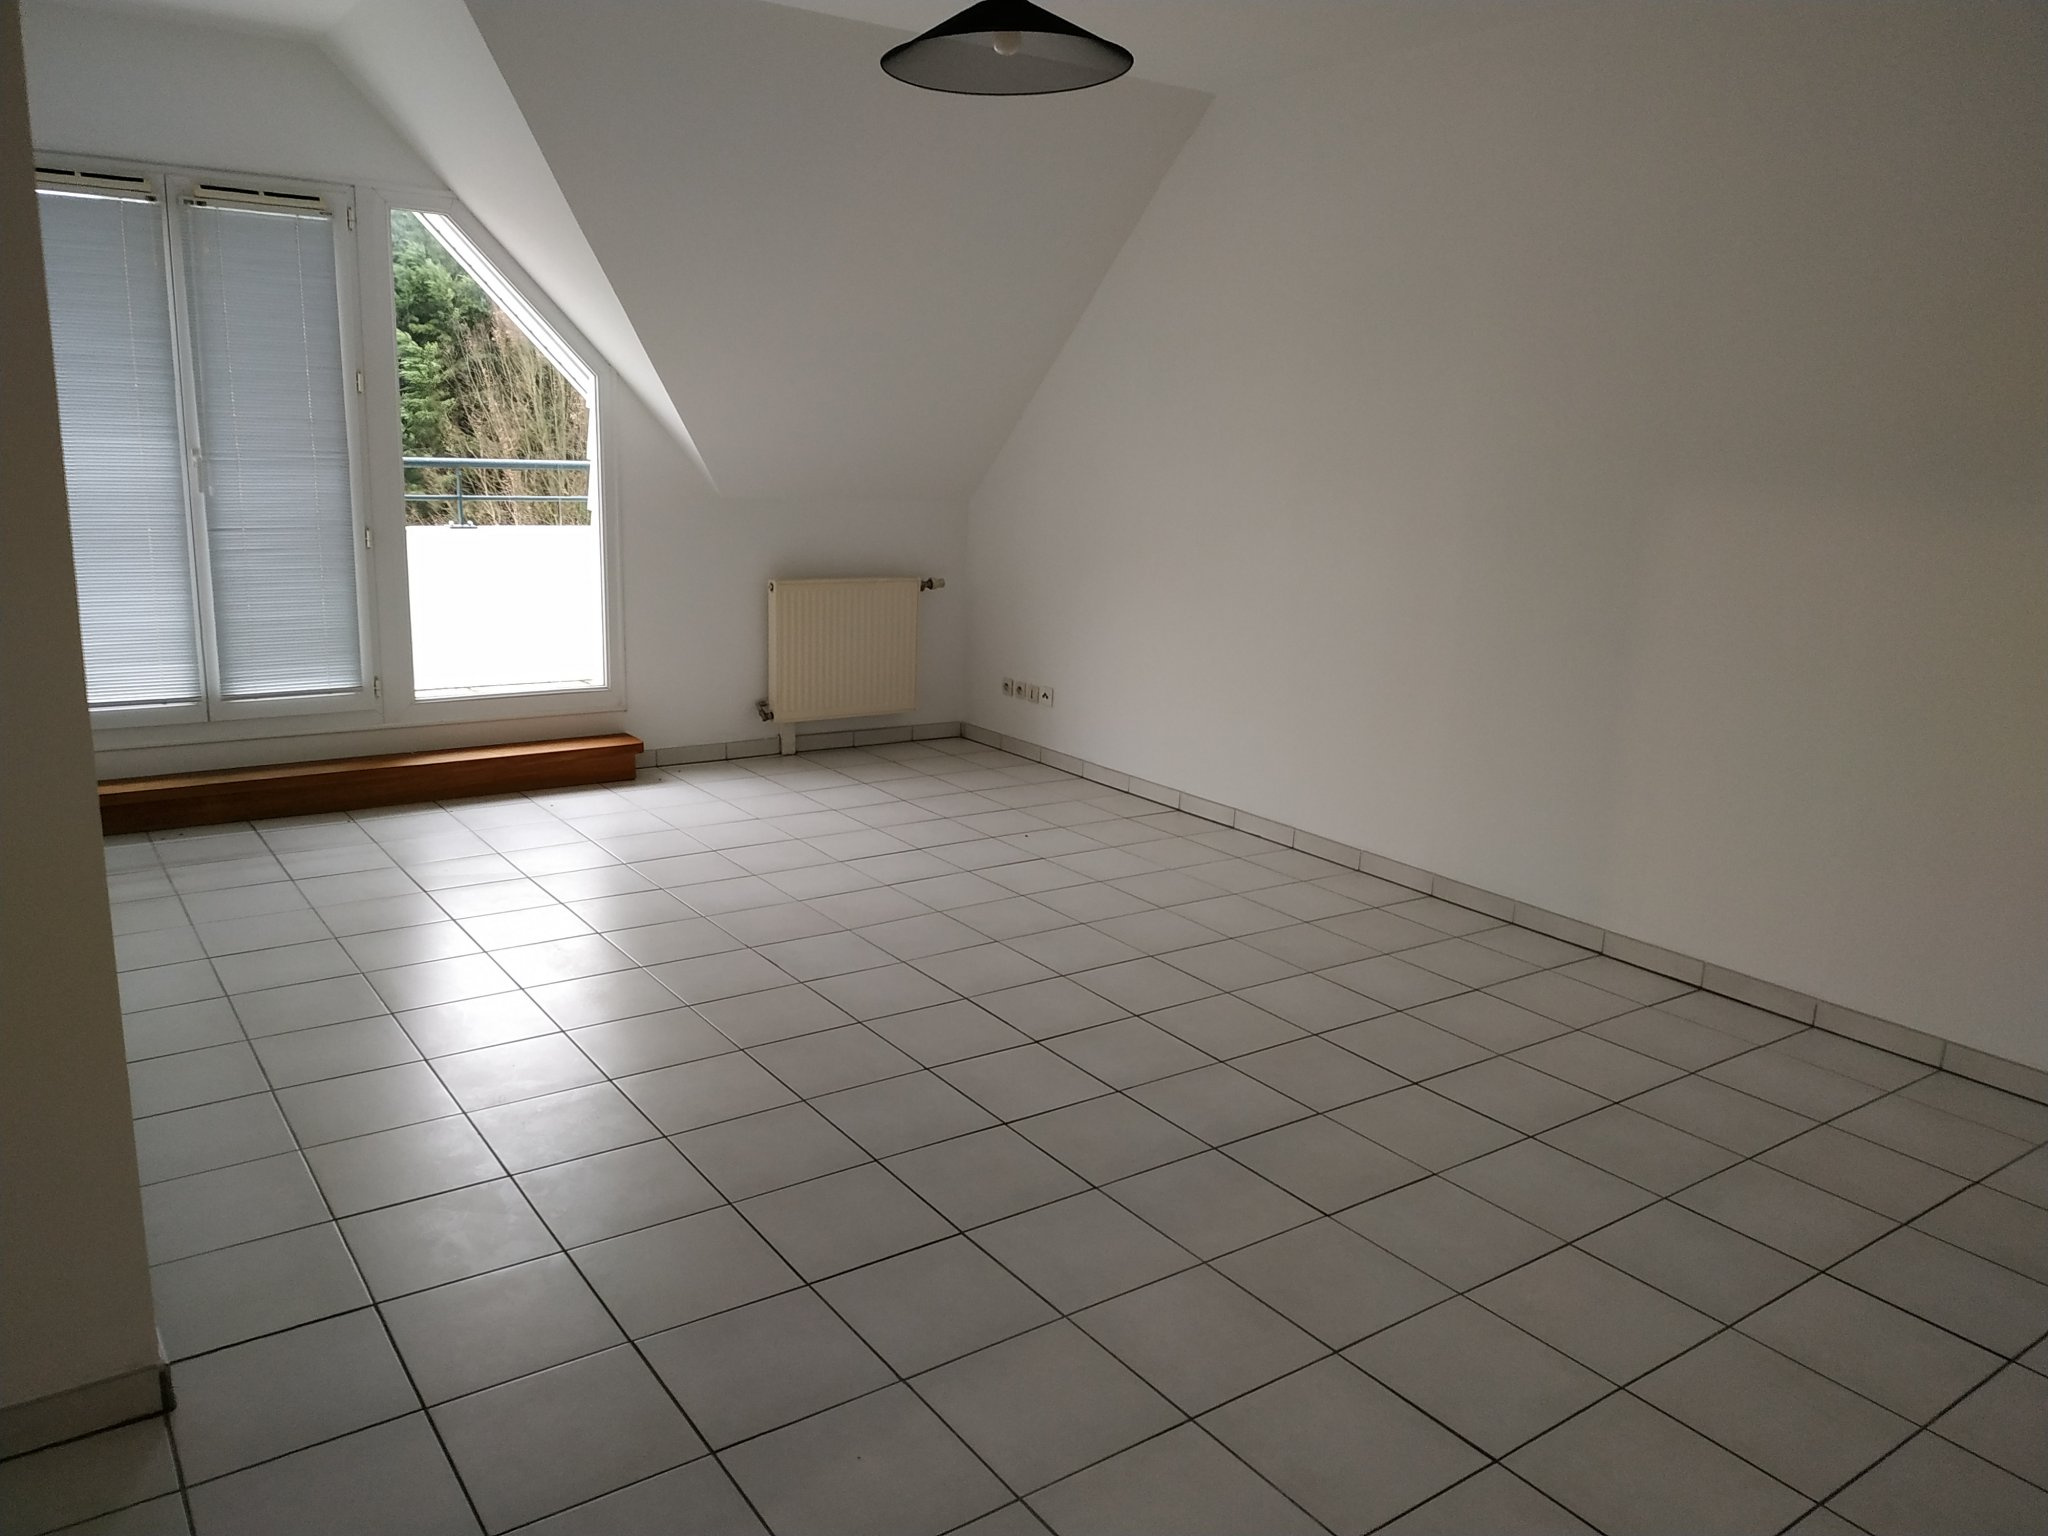 LUNERAY - Appartement F3 de 69.34 m2